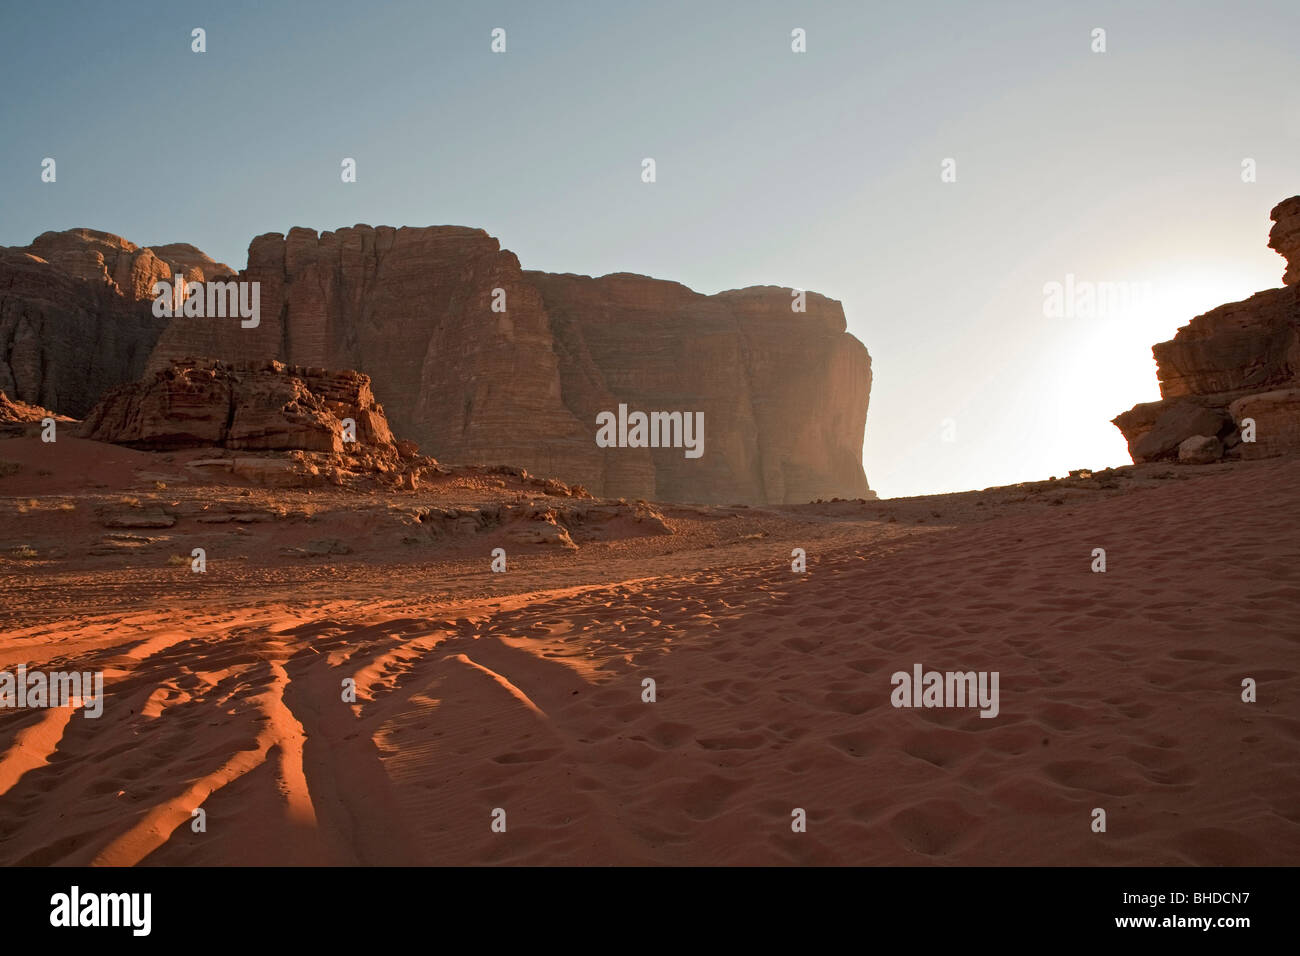 Jordan sunset Wadi Rum and the valley of the moon - Stock Image